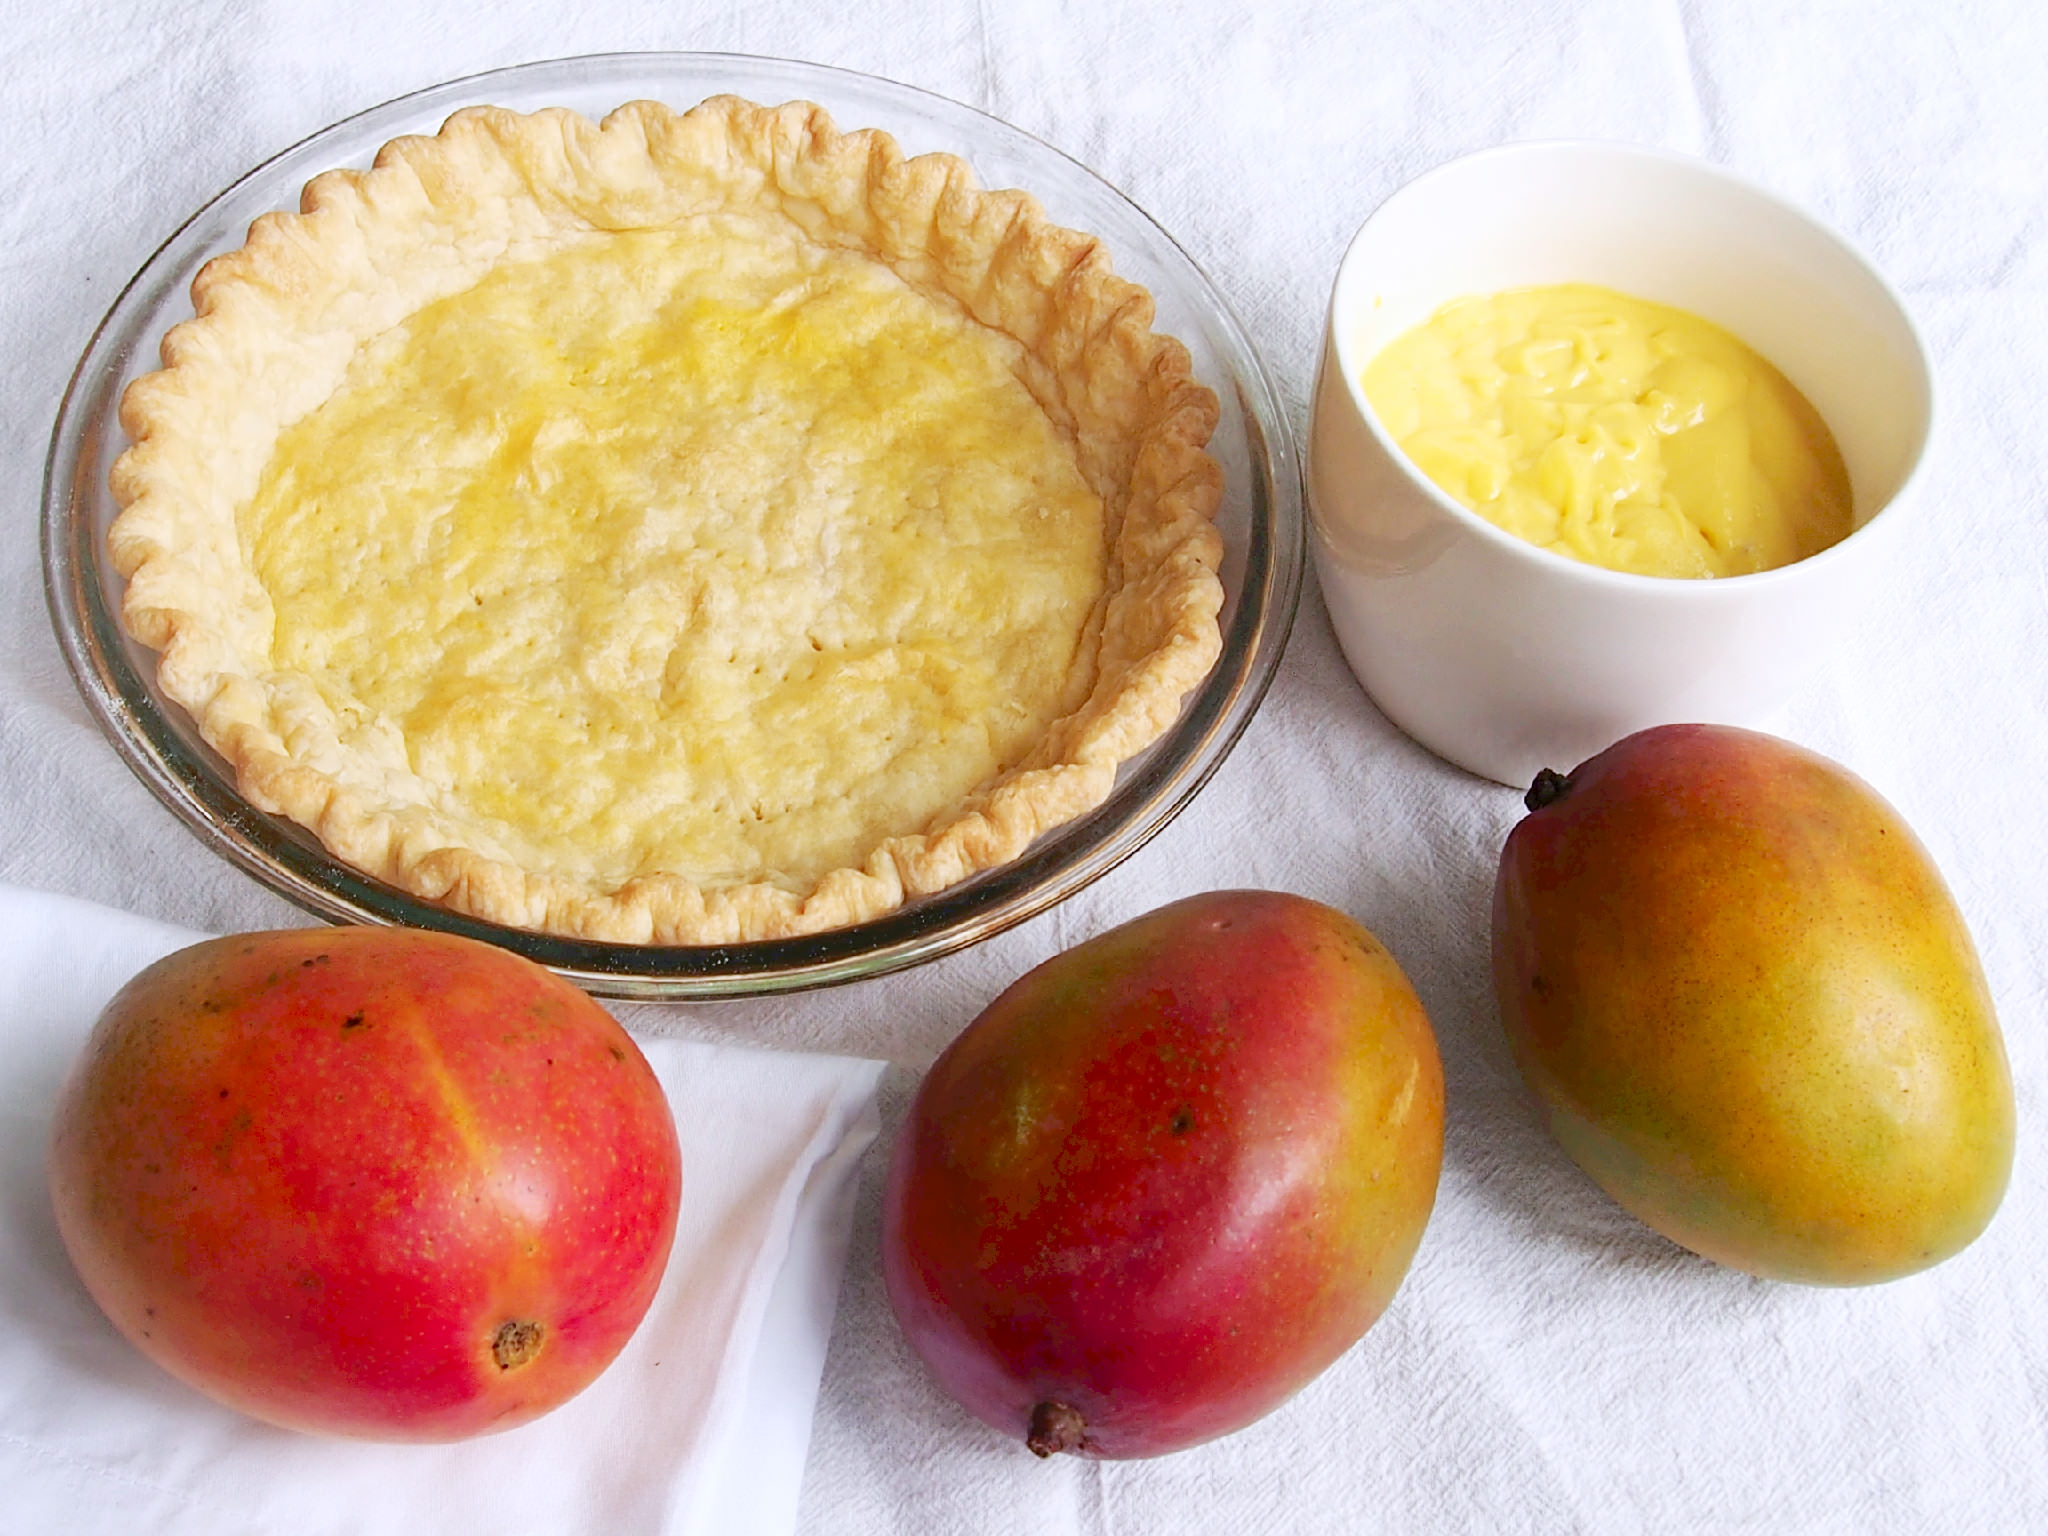 Ingredients to make mango cream pie